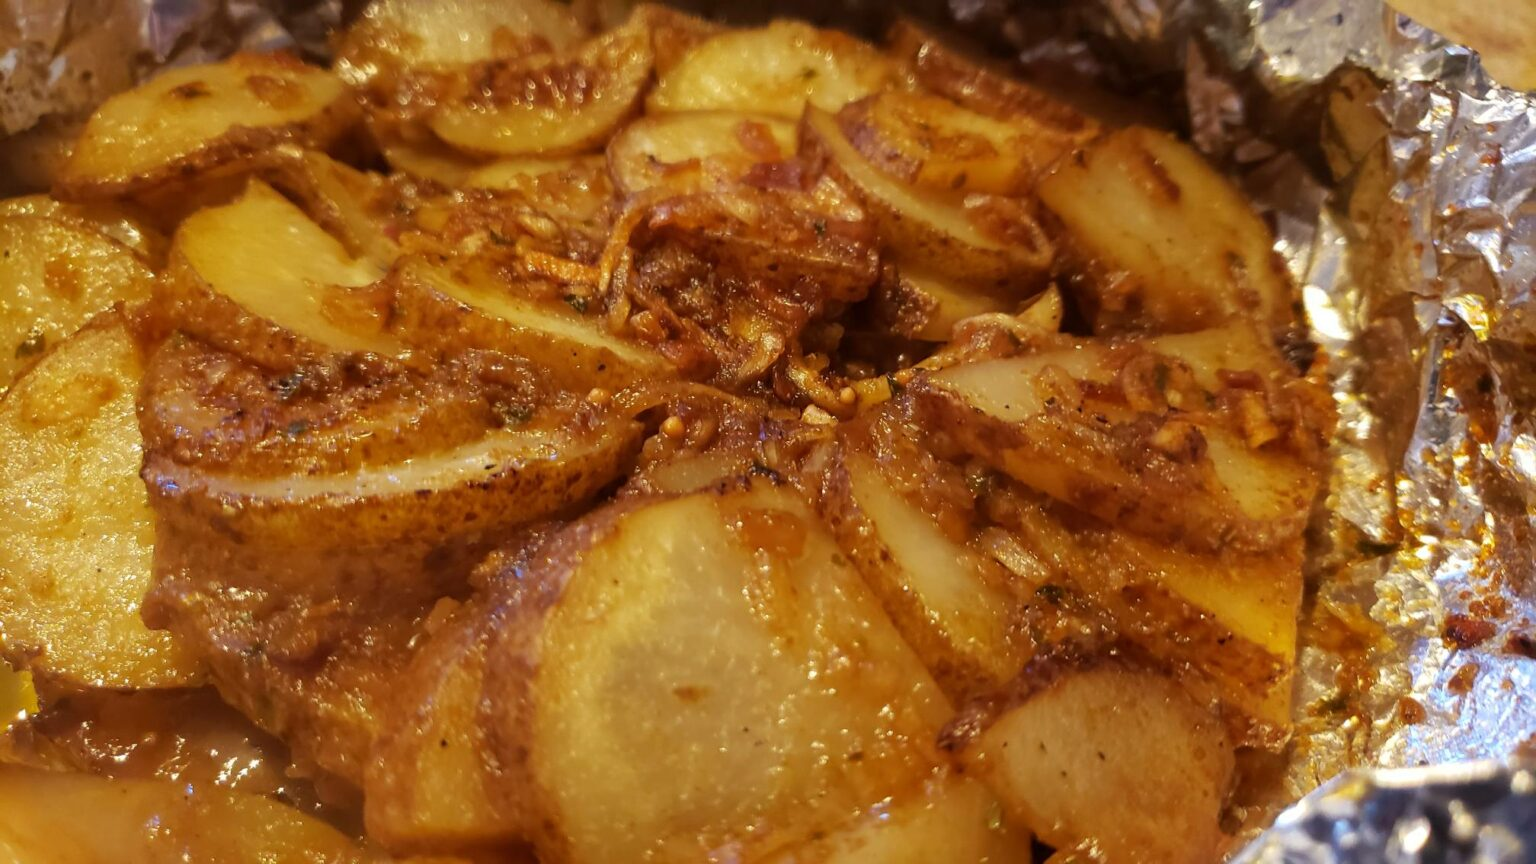 Picture of cooked onion soup mix potatoes in foil